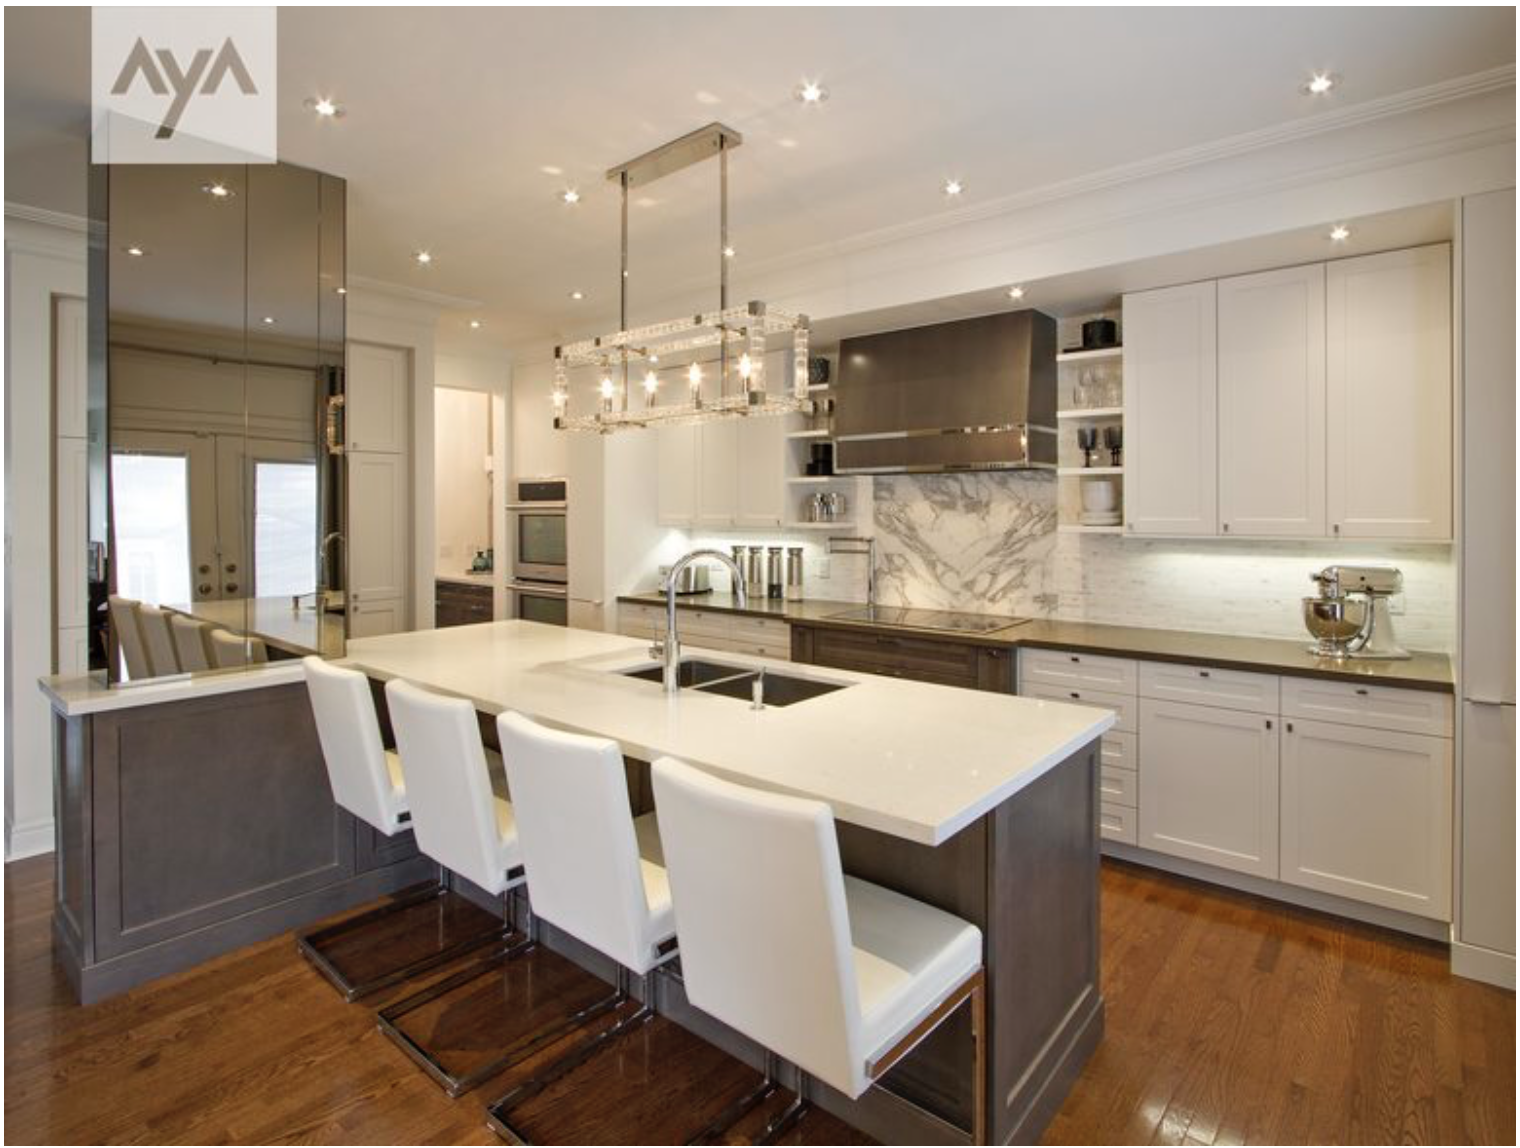 Kitchen Cabinets At Innovative Kitchens By Design